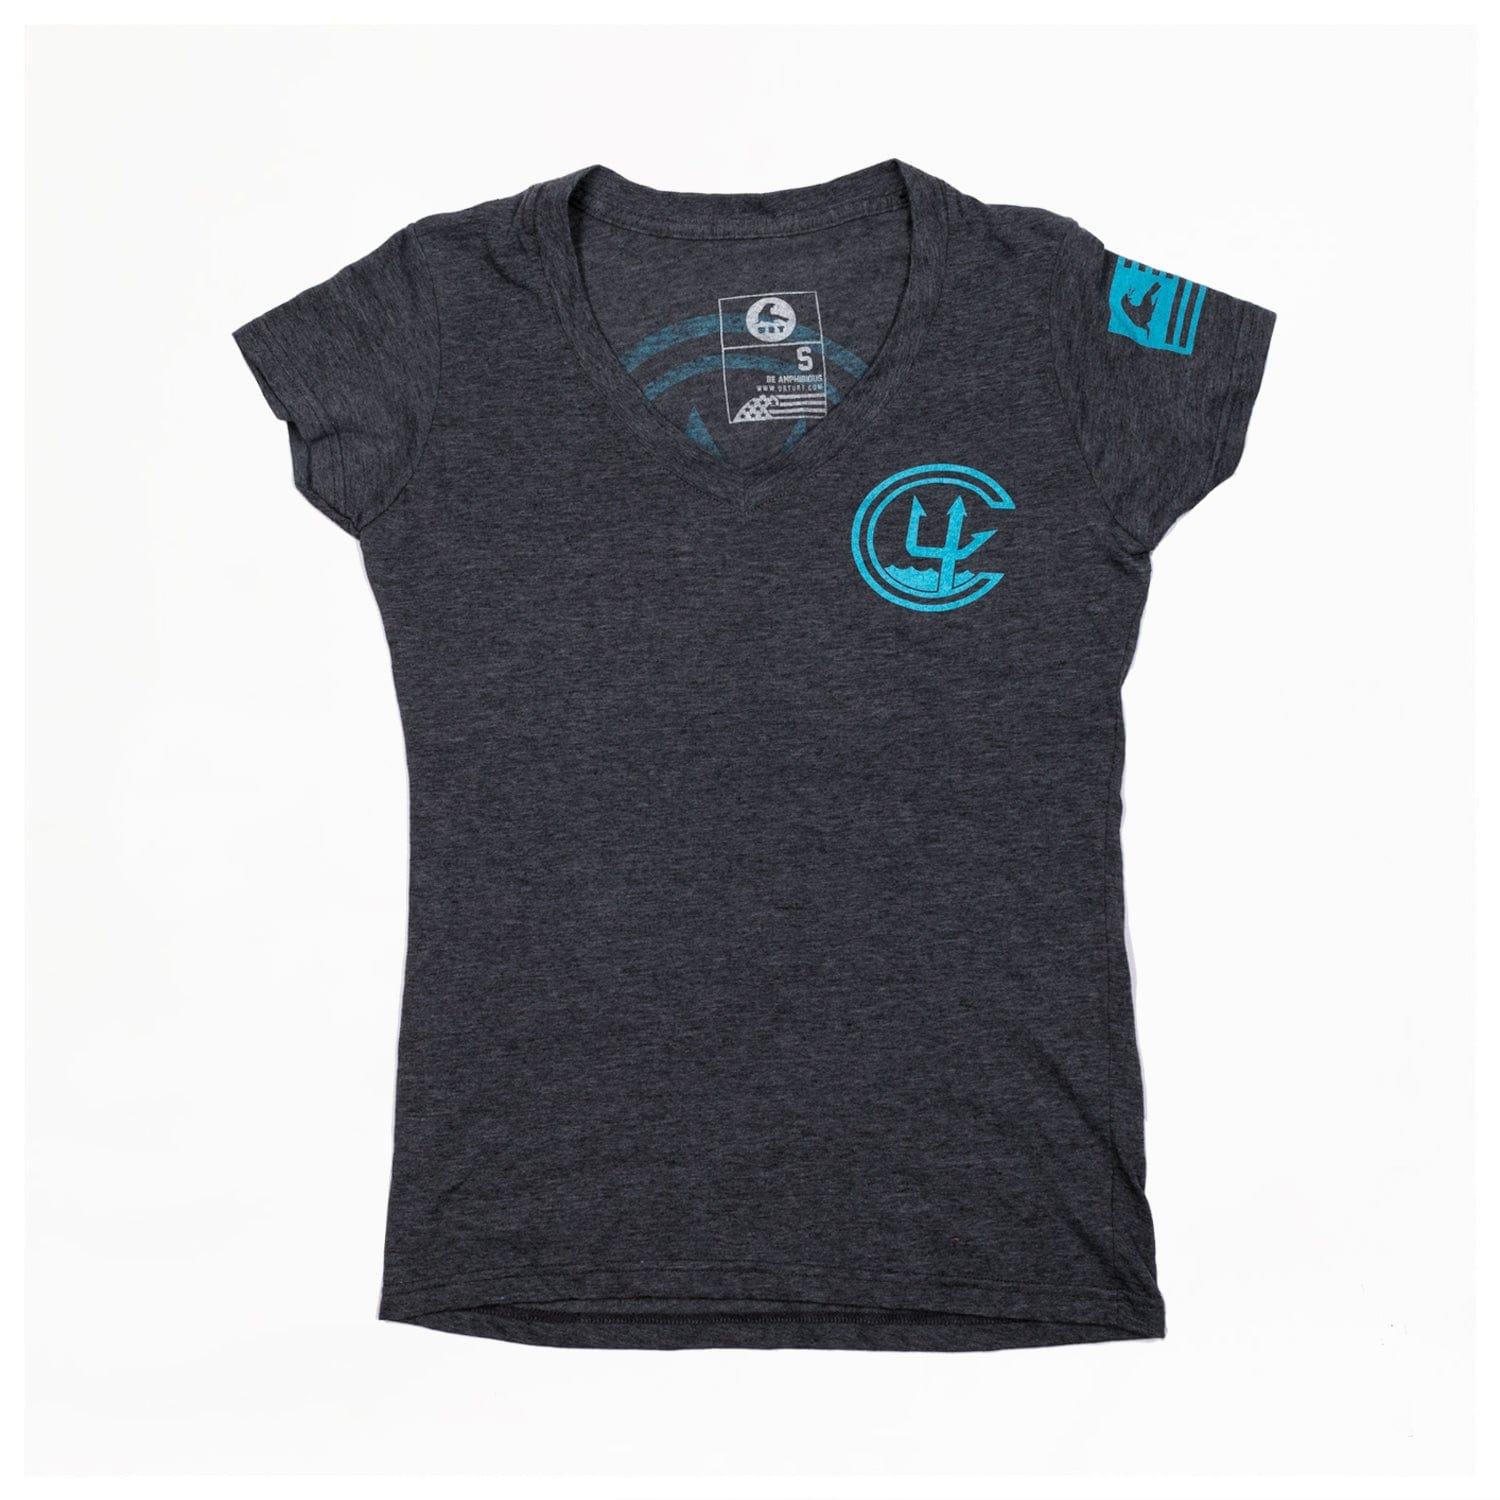 WOMEN'S C4 FOUNDATION LOGO // CHARCOAL HEATHER